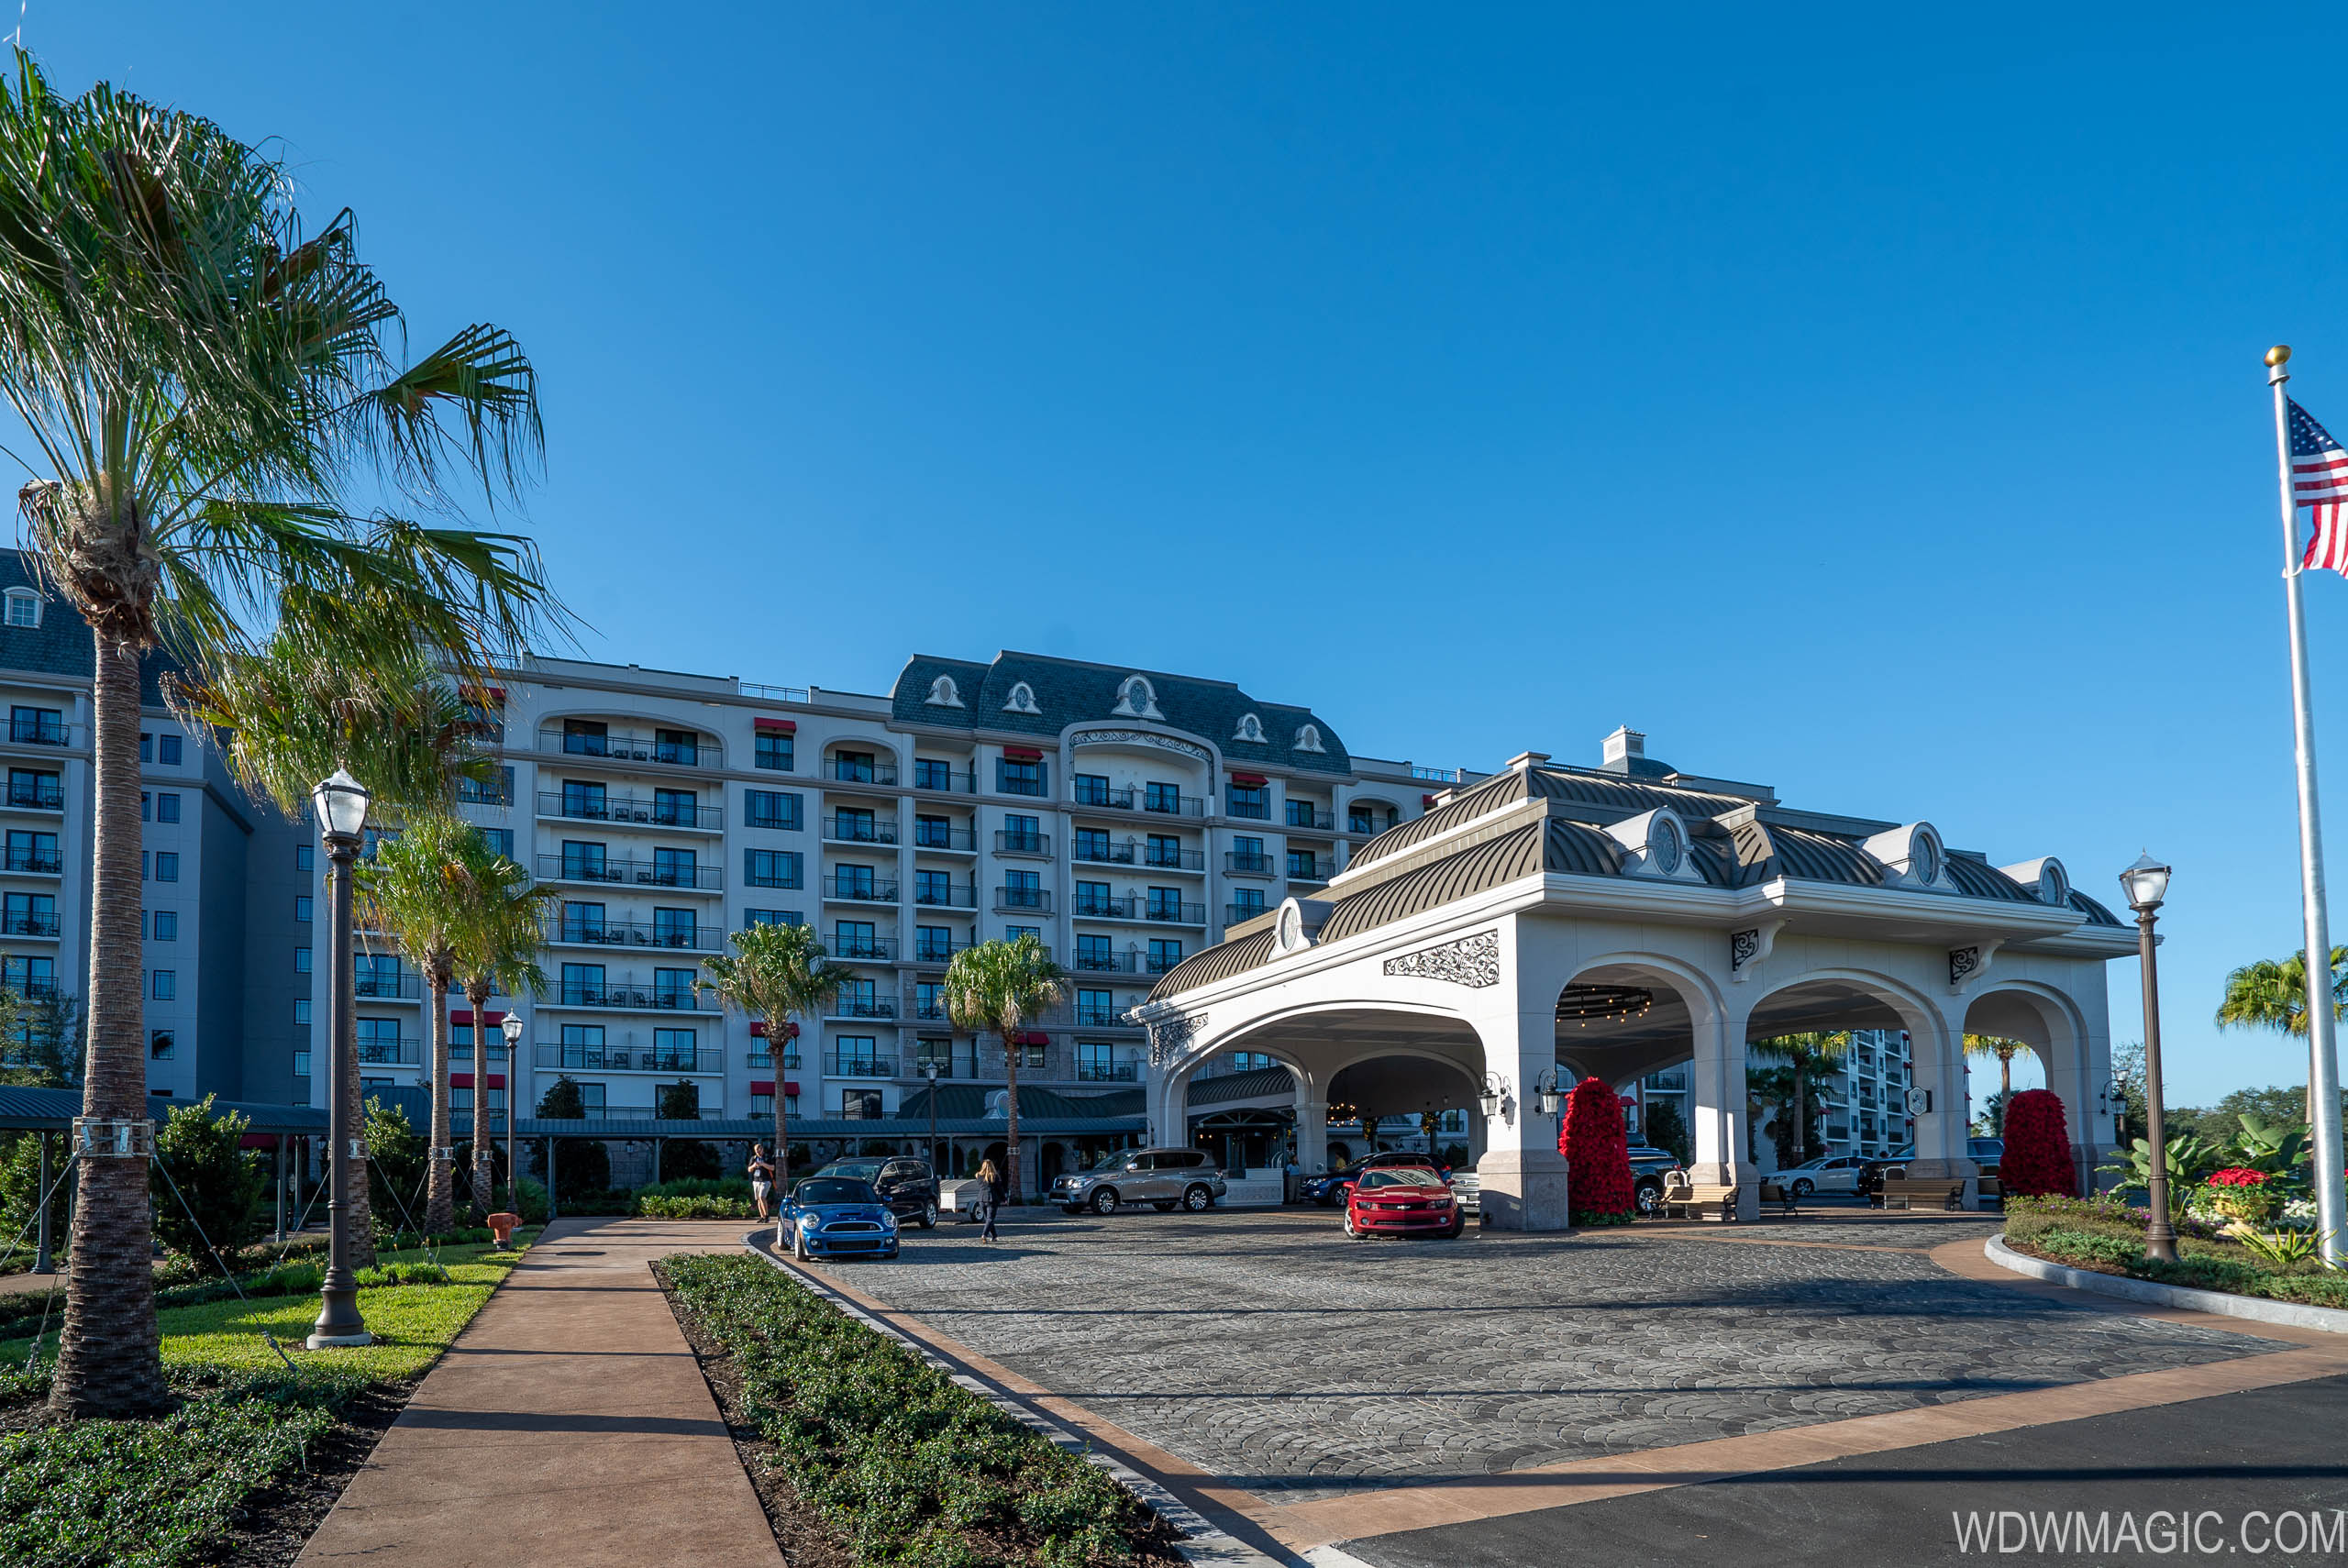 Walt Disney World's Resort hotels remain closed until further notice